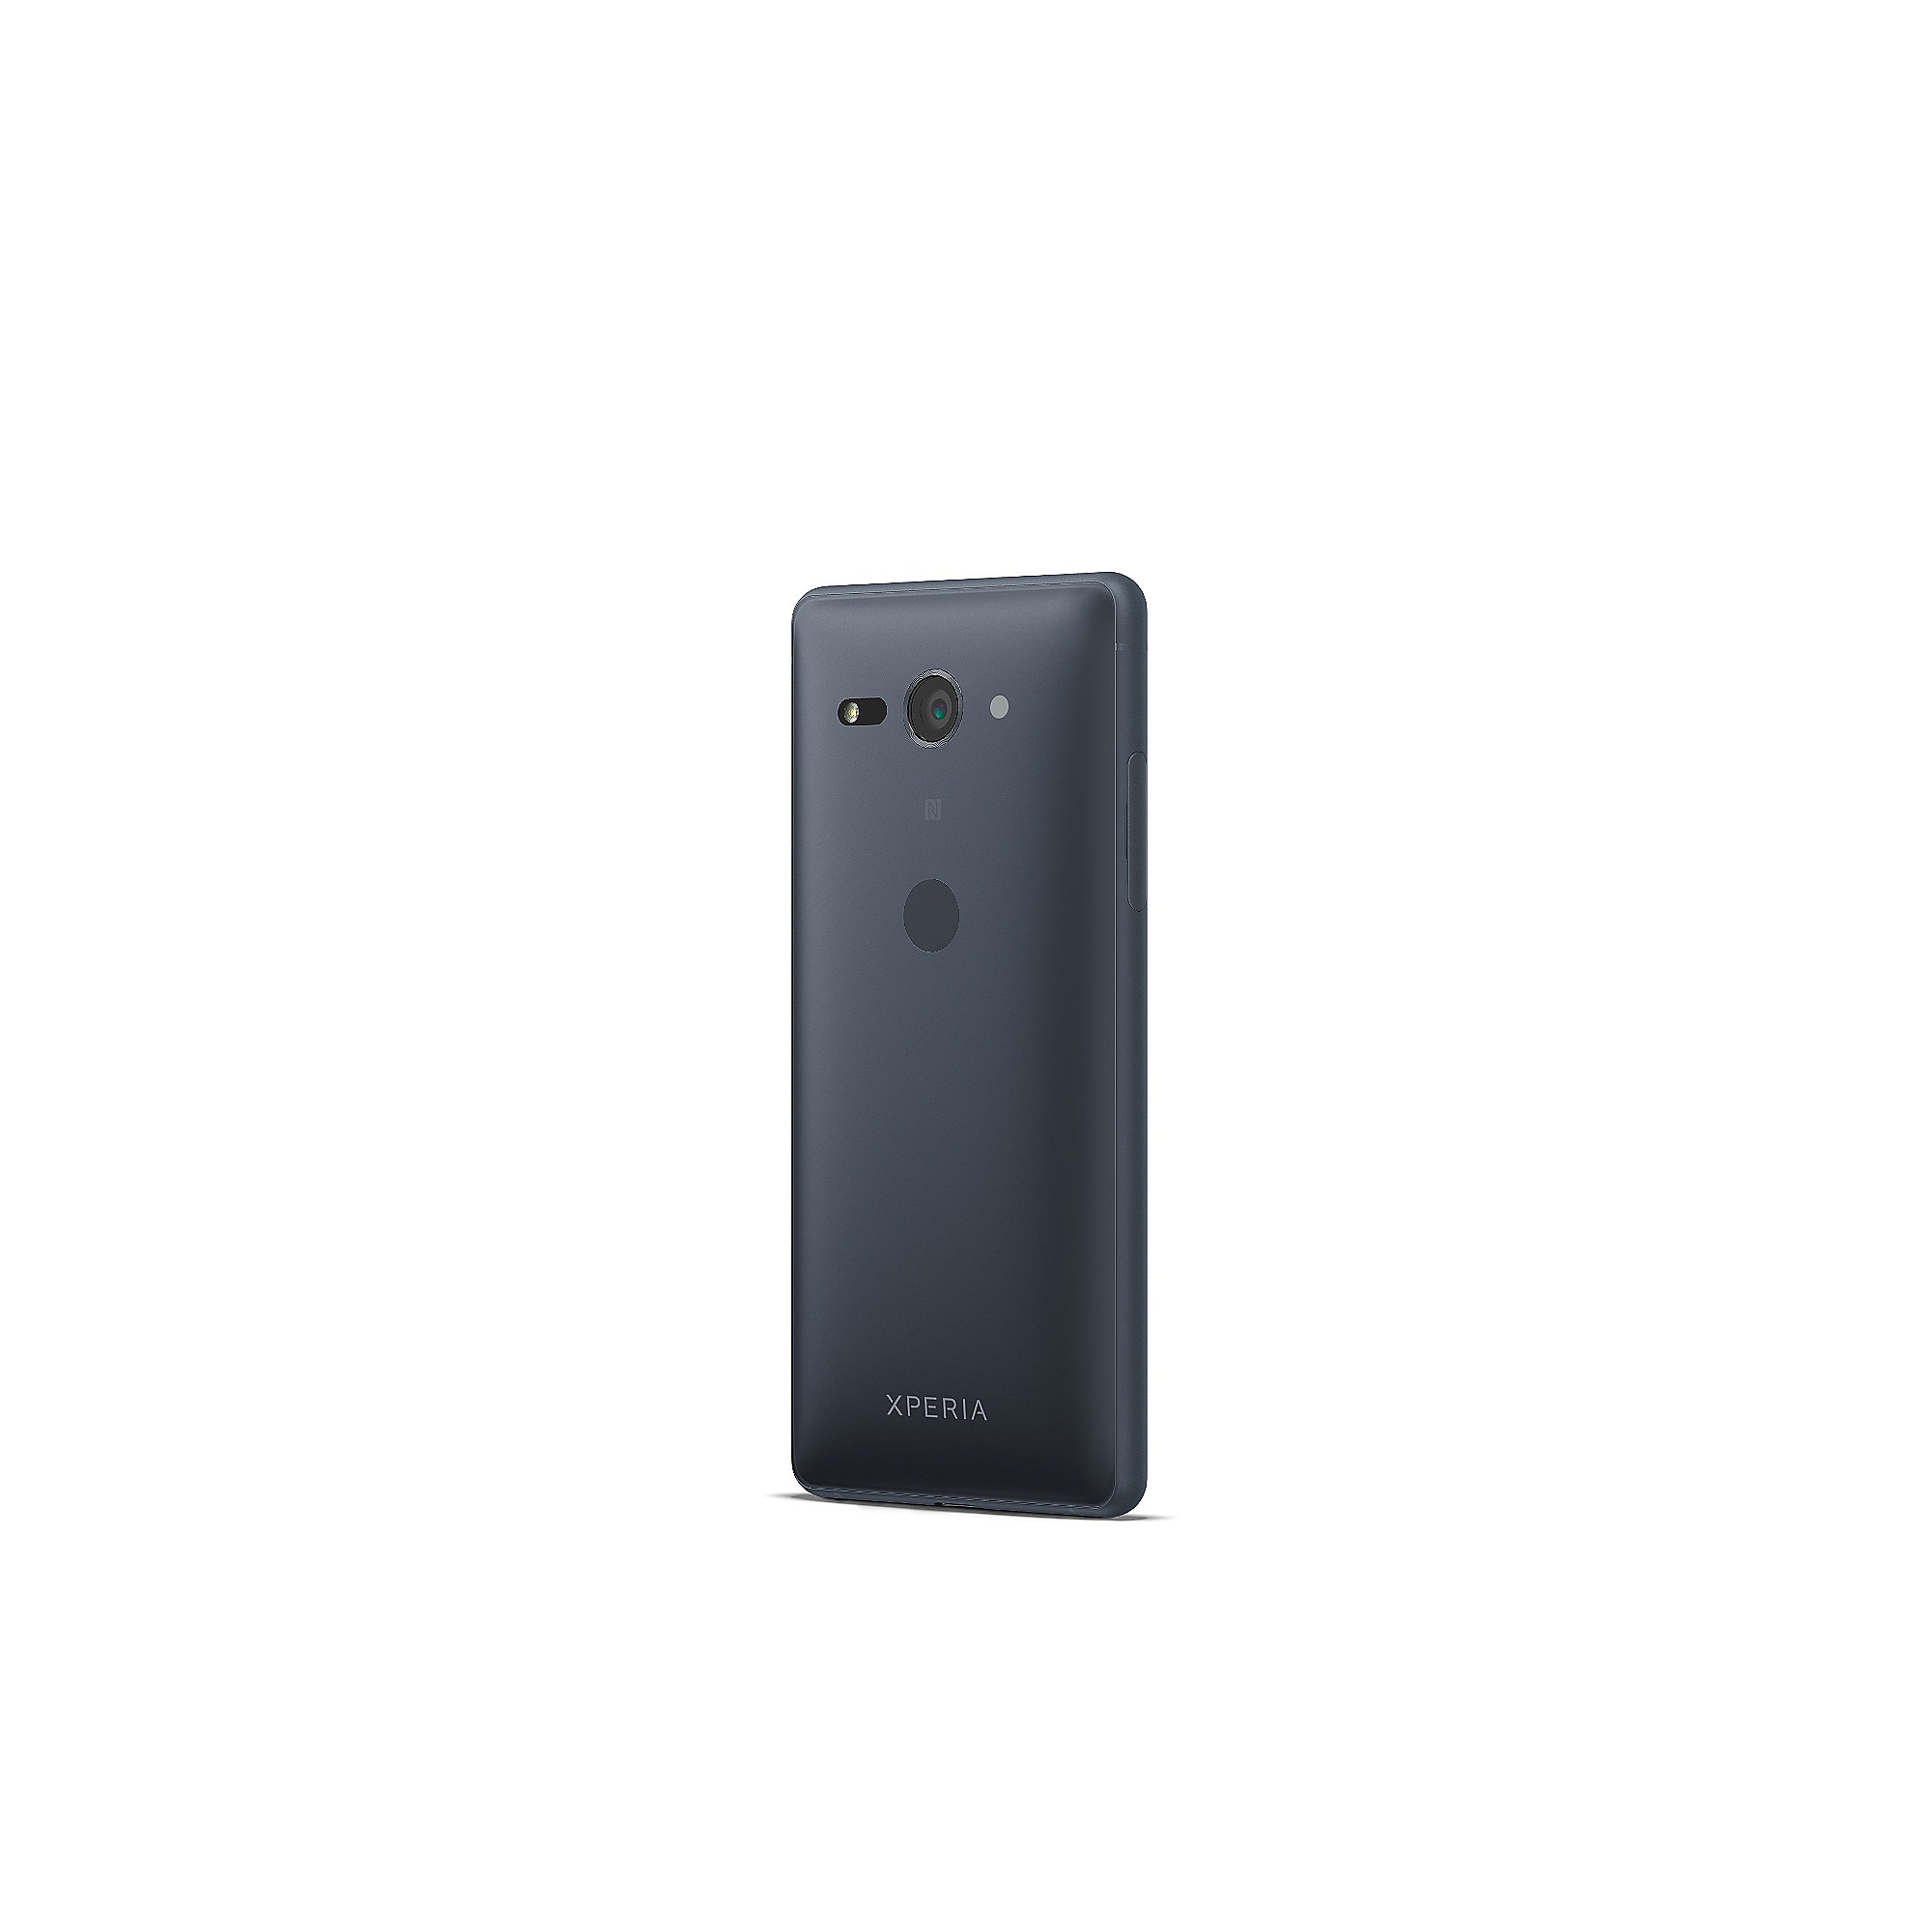 Sony Xperia XZ2 compact black Android 8 Smartphone